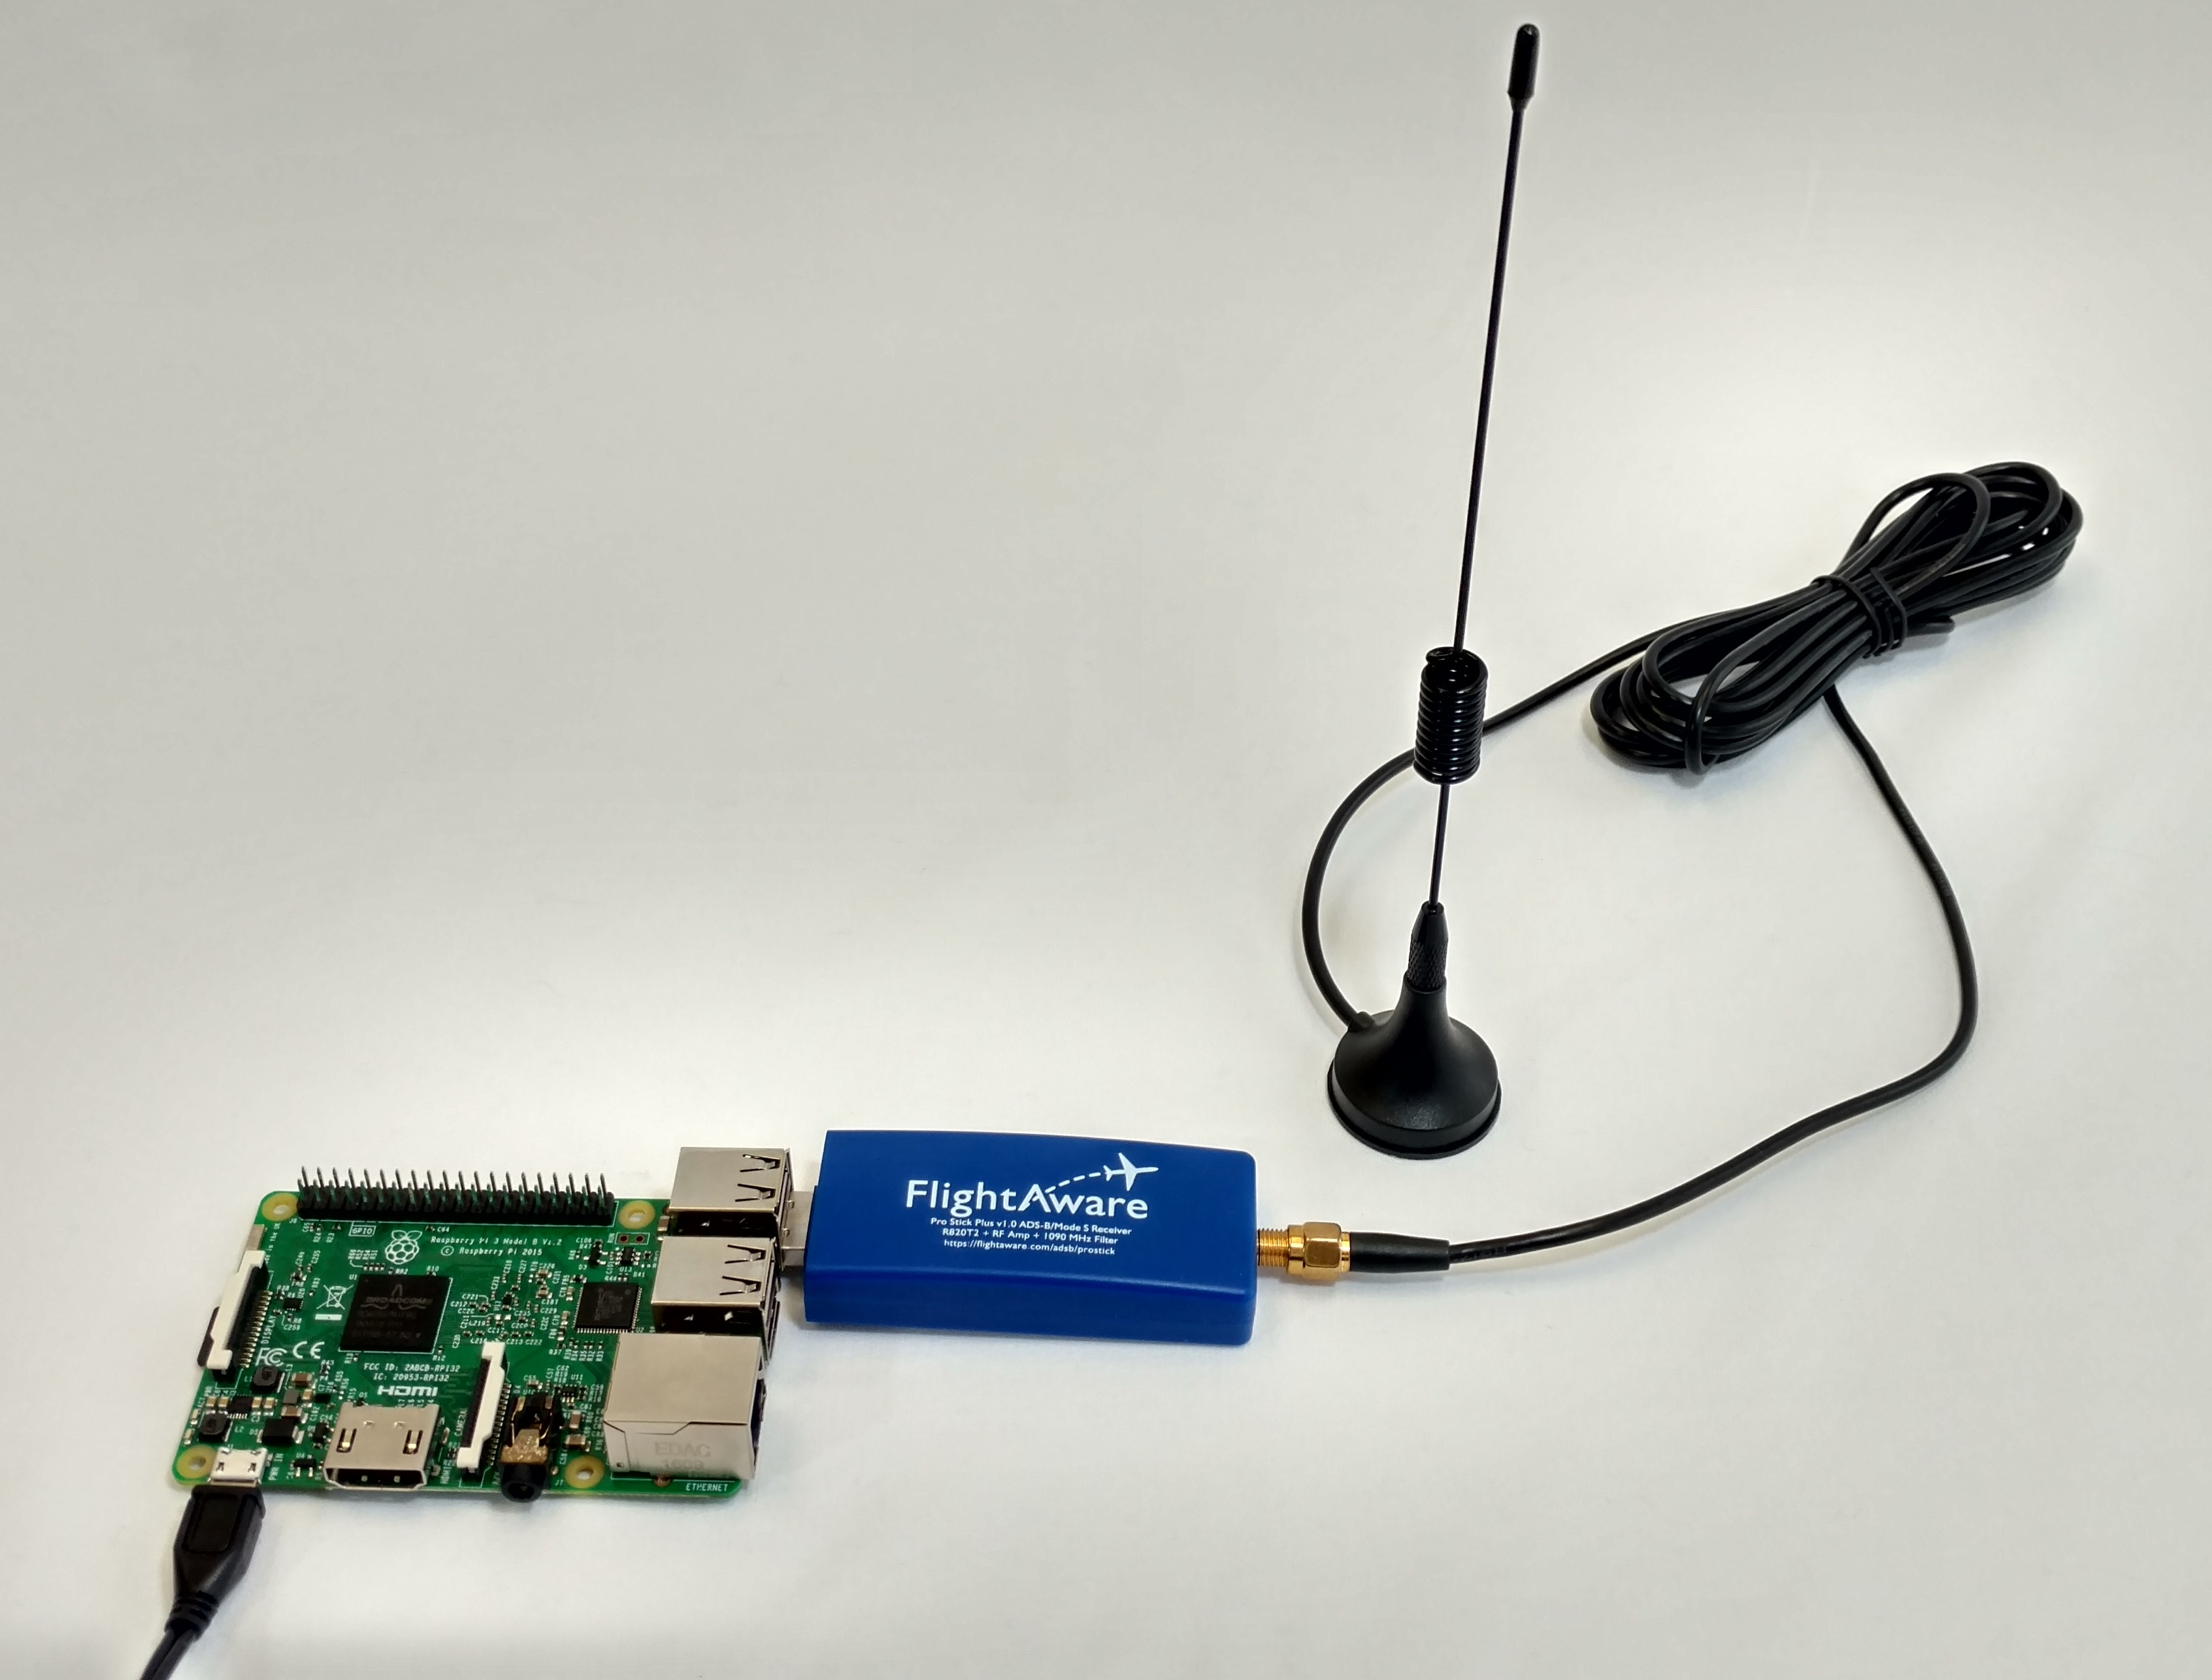 Raspberry Pi connected to power and an antenna